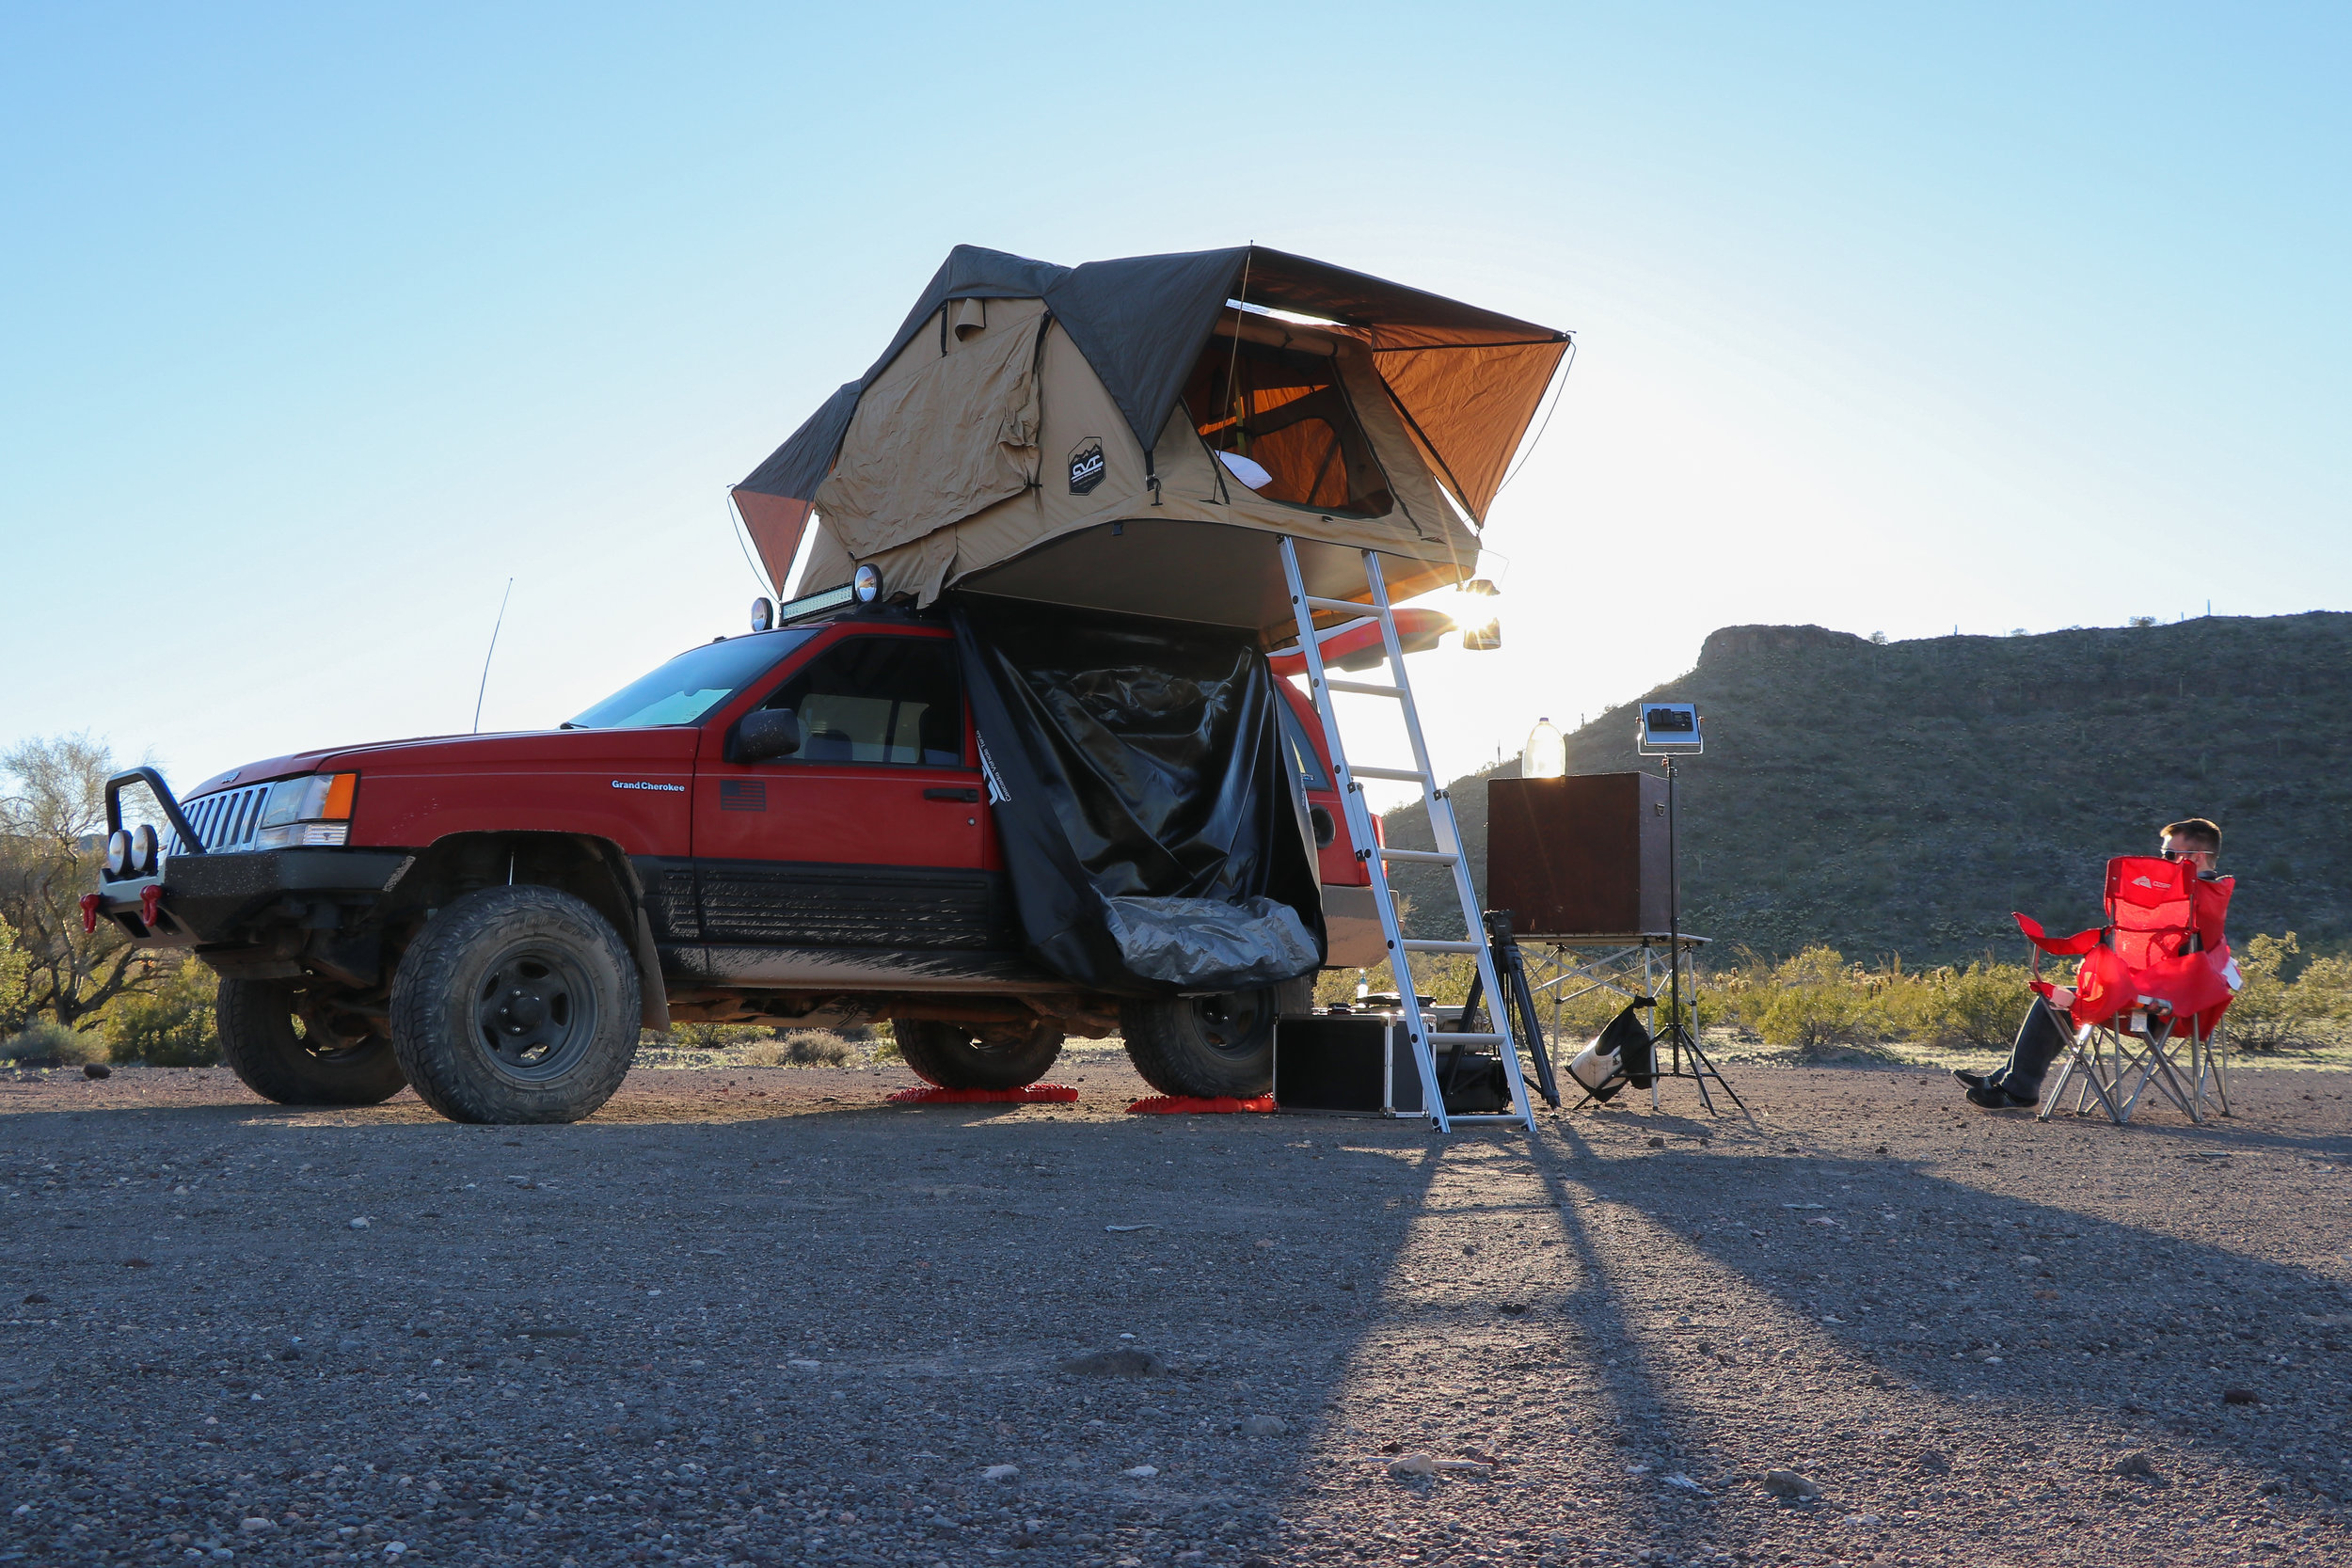 Our first night's camp set up in the Little Horn Mts, just north of the Yuma/La Paz County line.